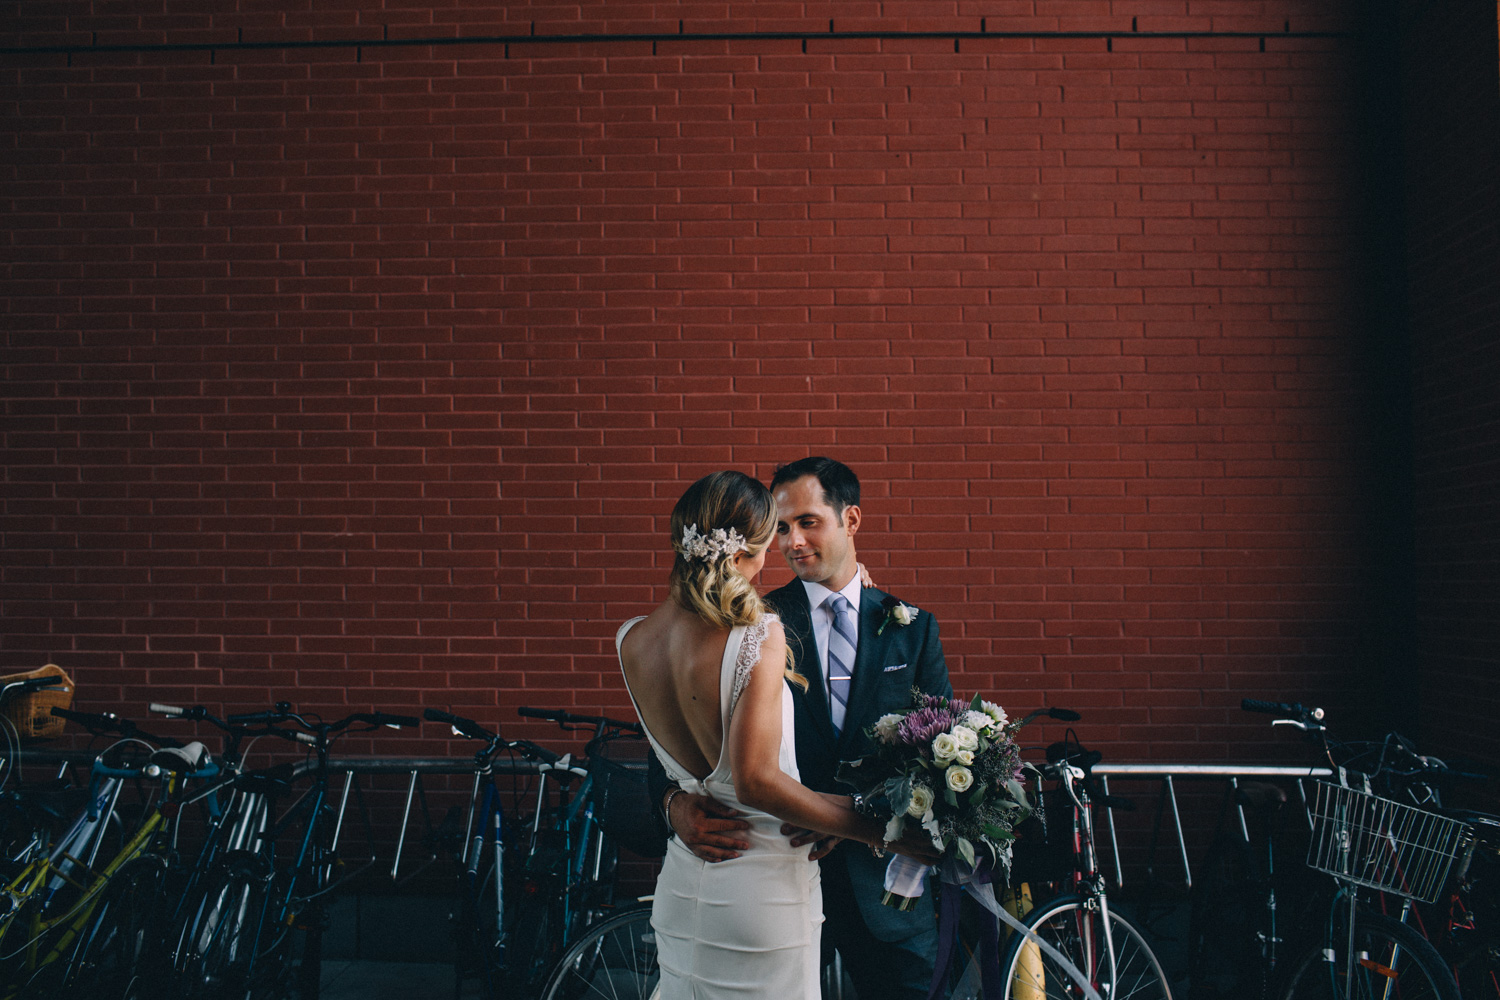 Steam-Whistle-Brewery-wedding-photos-Toronto-wedding-photography-by-Sam-Wong-of-Artanis-Collective_31.jpg